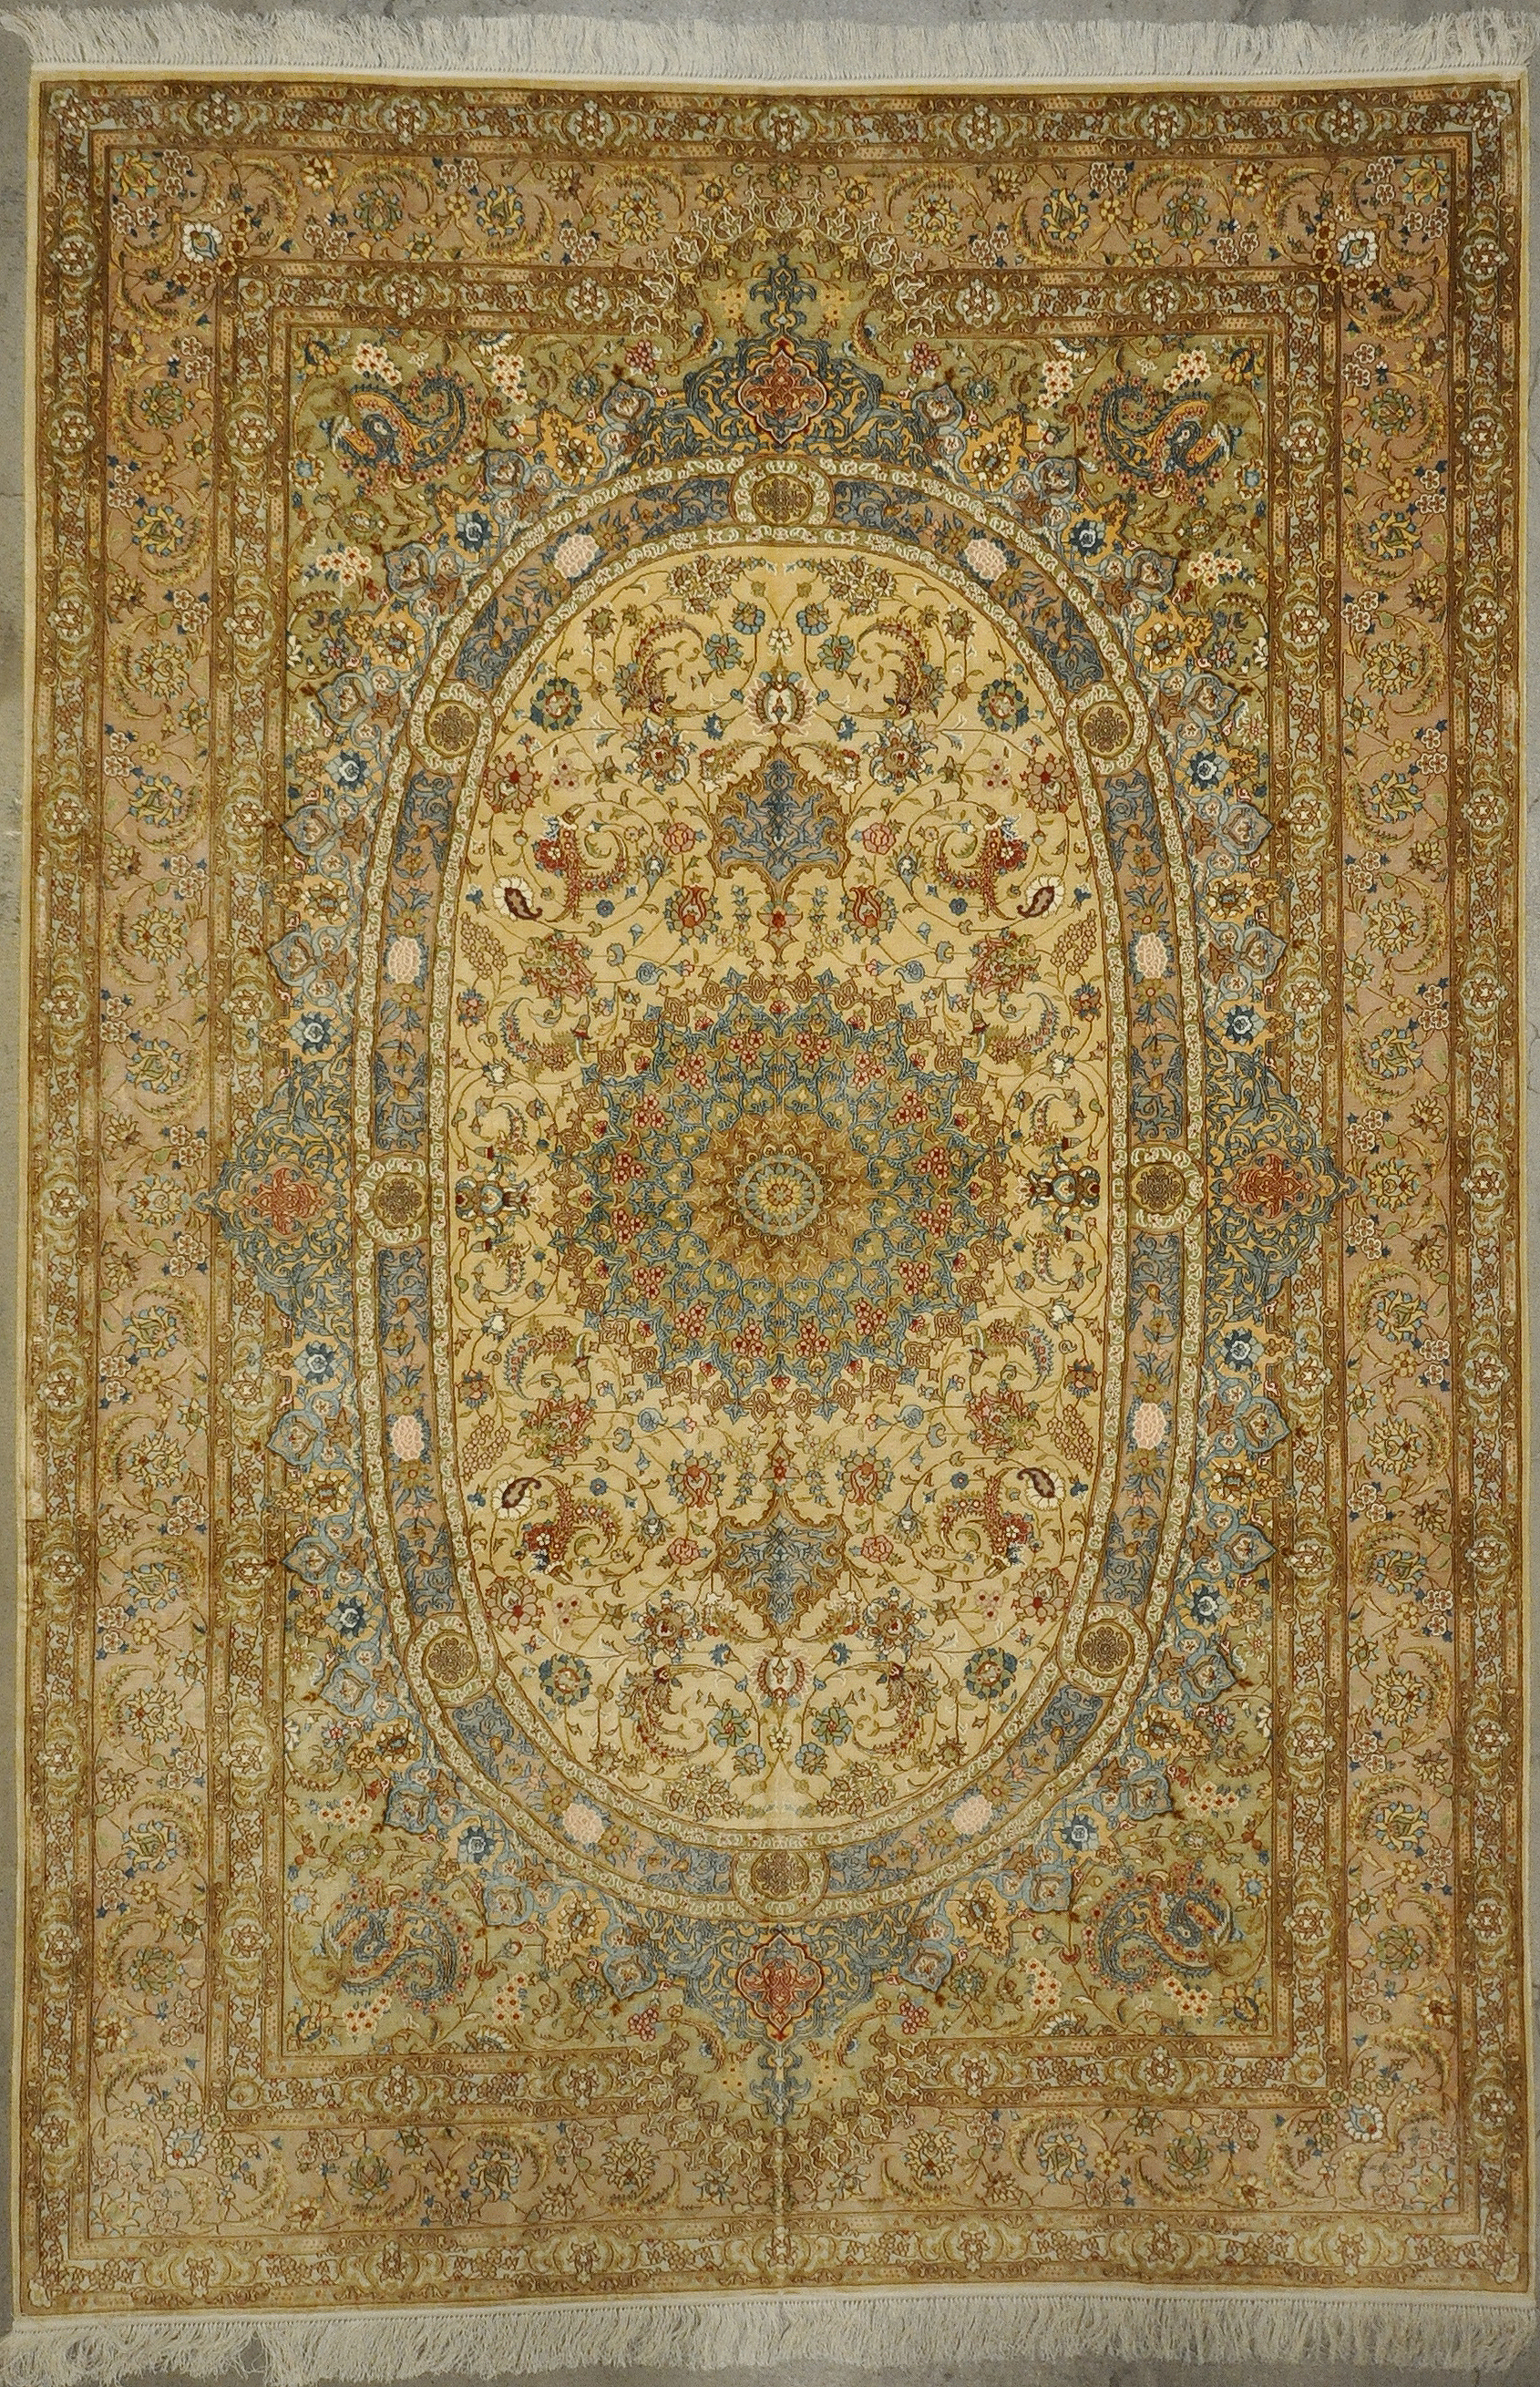 Finest Silk Qum rugs and more oriental carpet 33191-